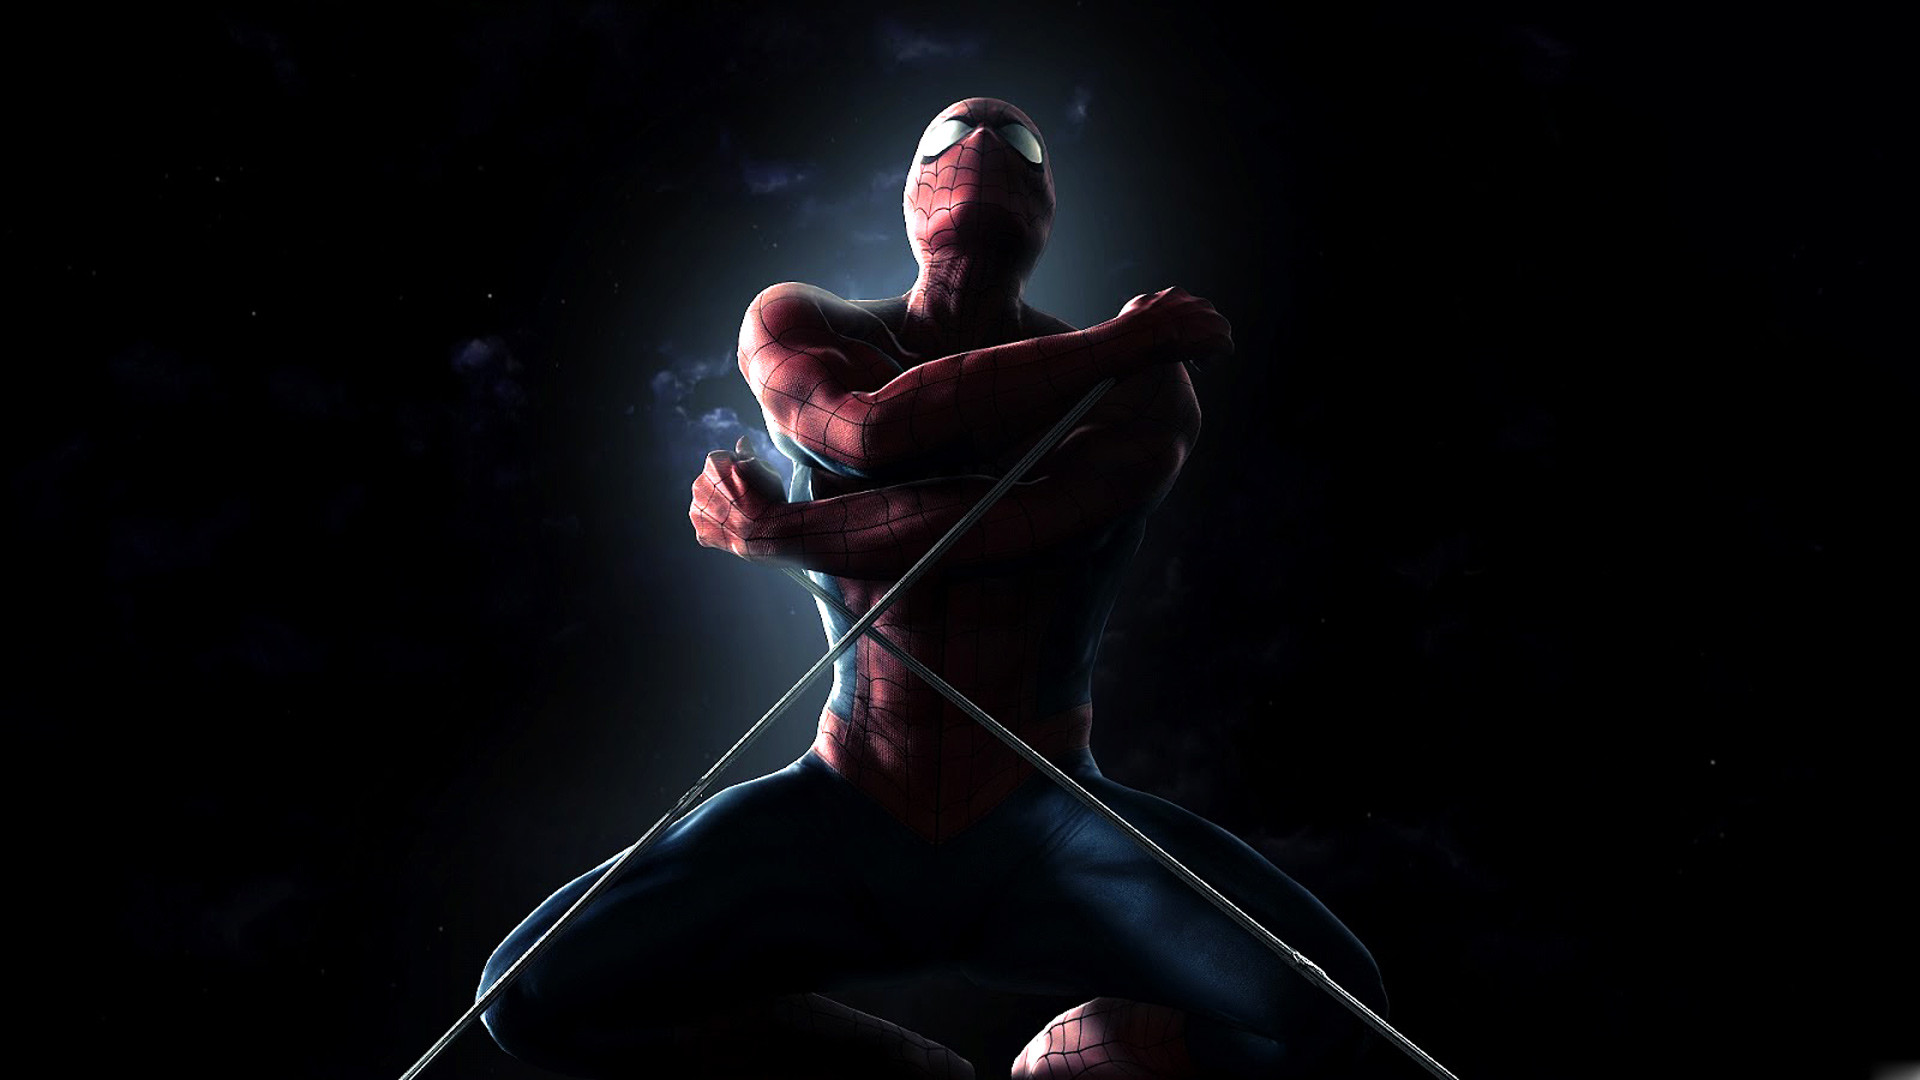 1920x1080 The Amazing Spider Man 2 HD Posters.  amazing_spider_man_2_movie_wallpapers_desktop_backgrounds_the_amazing_spiderman_2014_hd_wallpapers-(7)